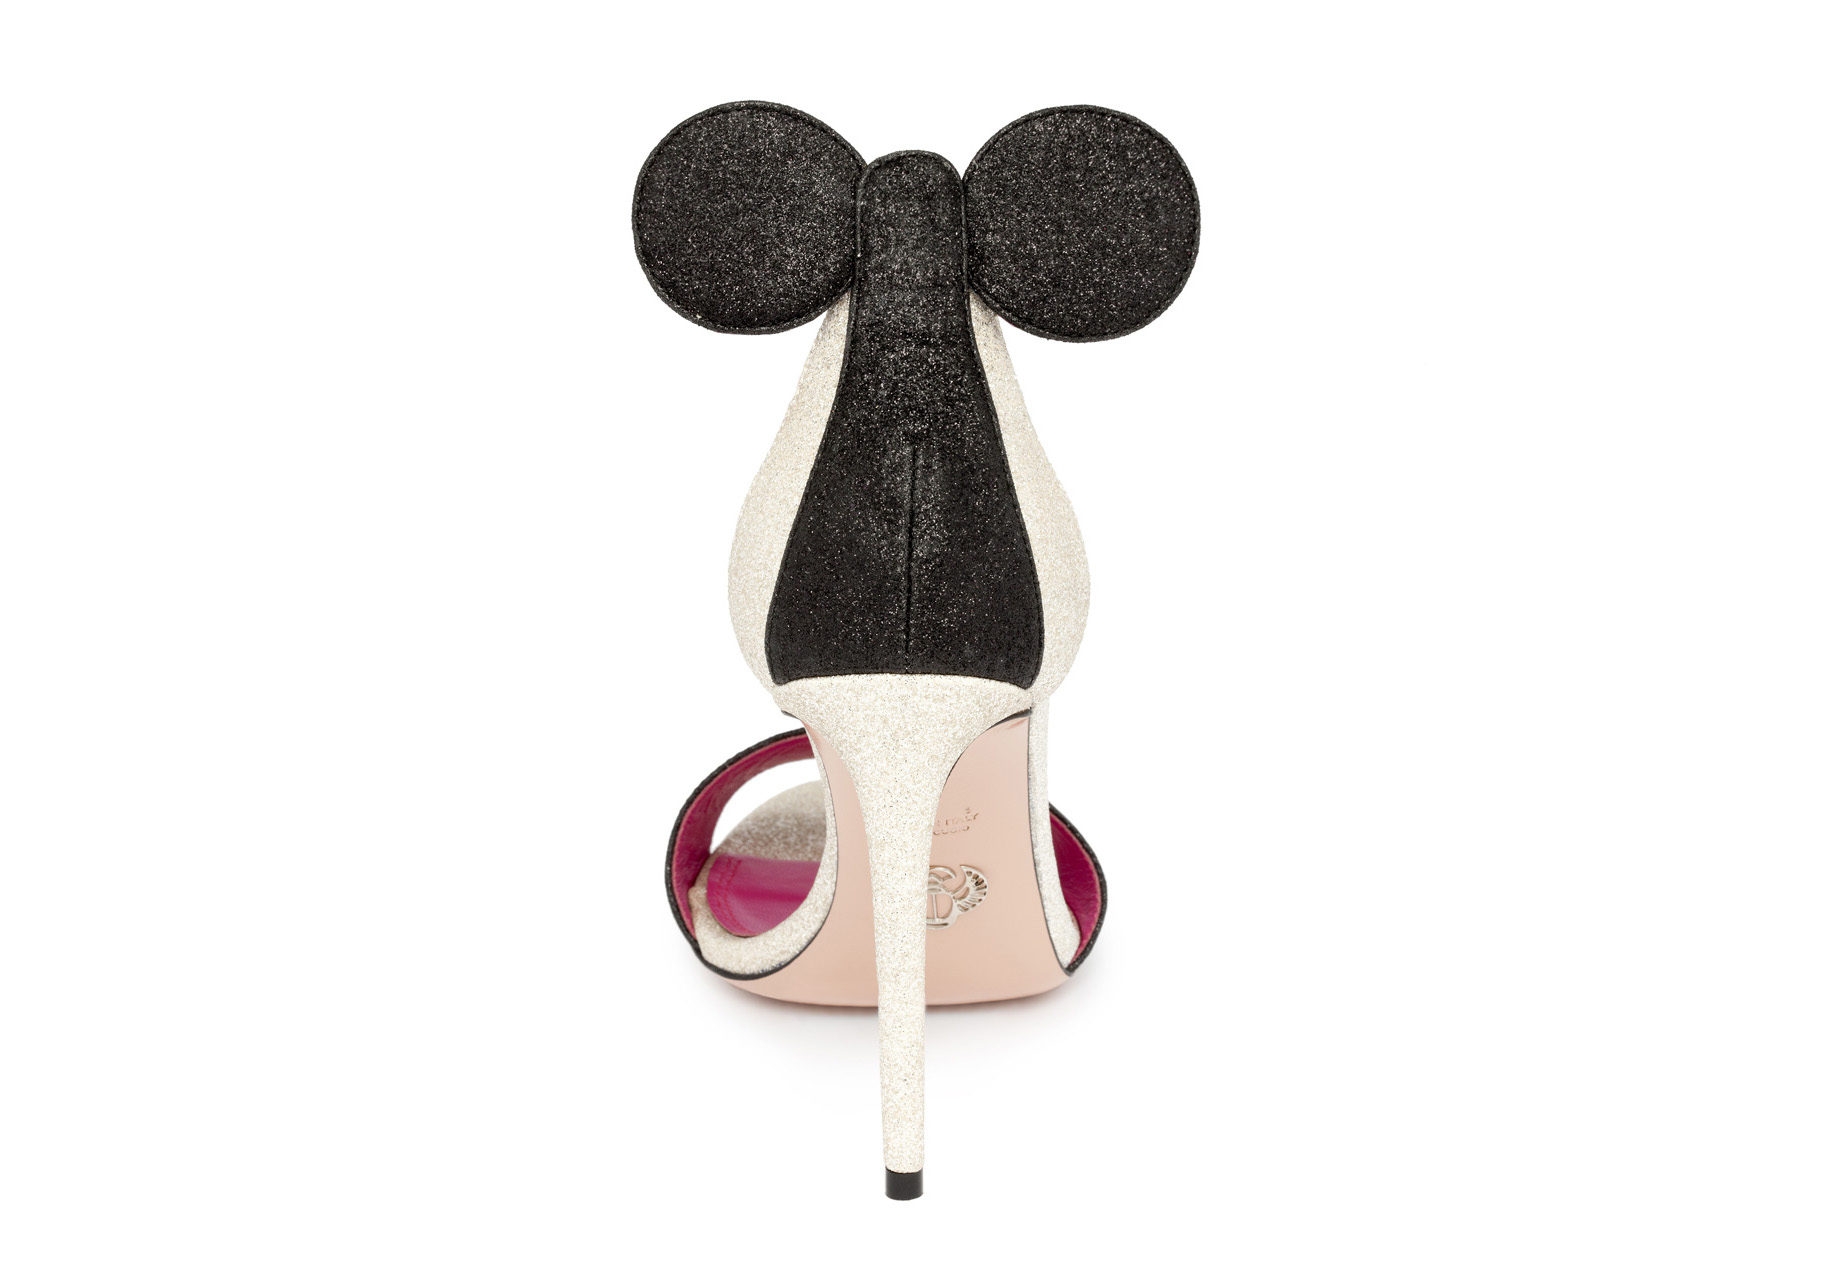 These are the Minnie Mouse heels Disney fans are freaking out over